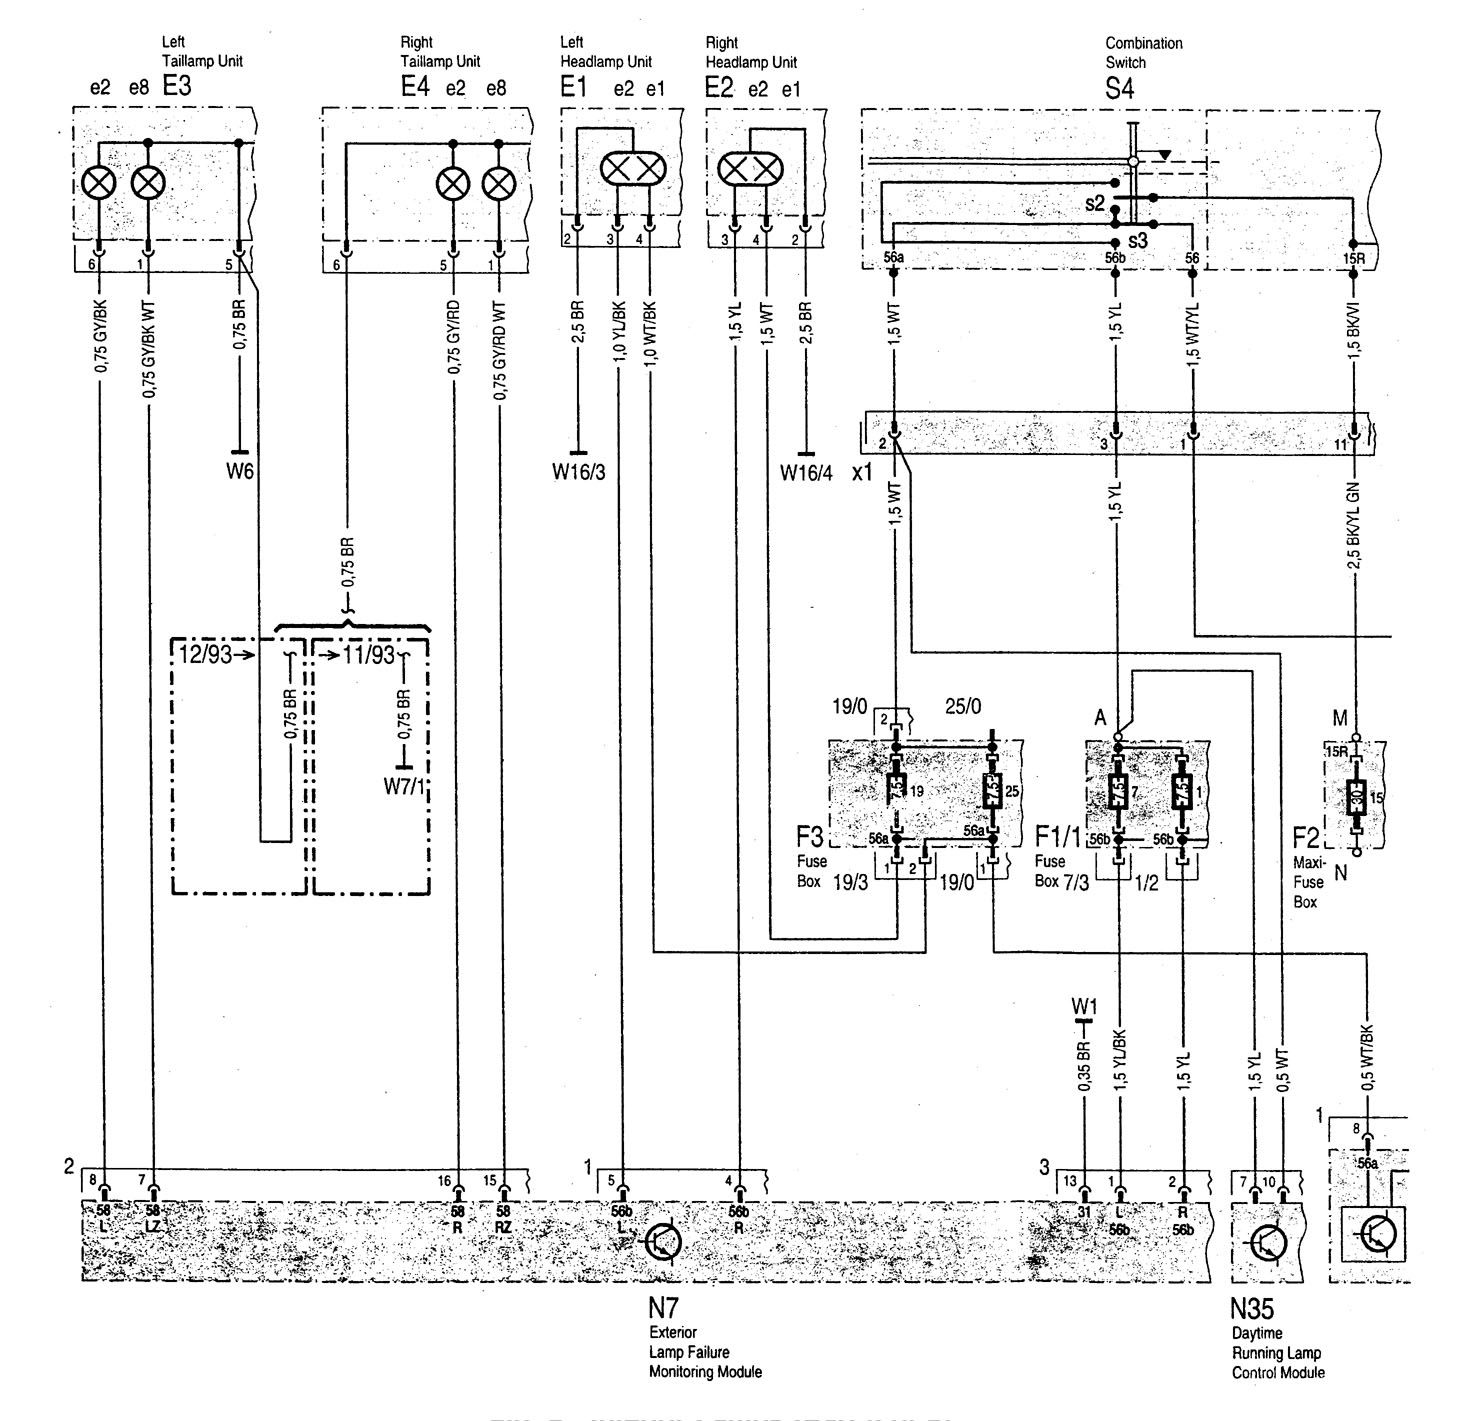 Mercedes Benz 1994 Wiring Diagram Great Design Of E220 C280 1997 Diagrams Radio Harness 1990